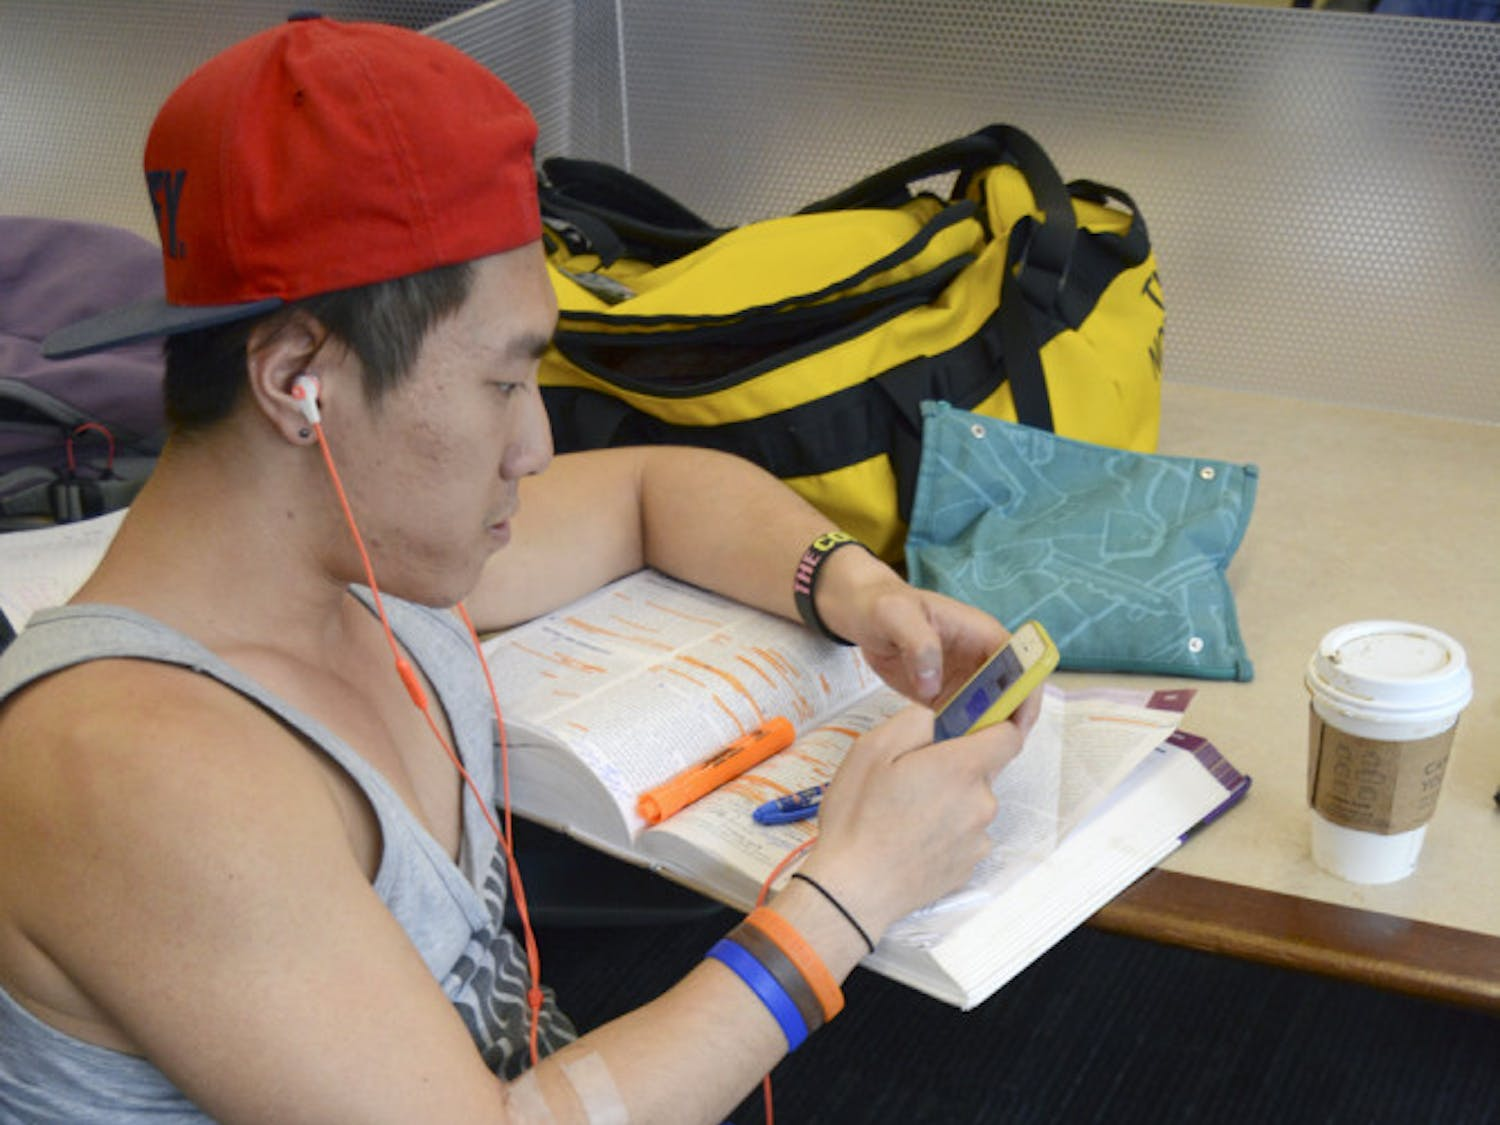 Thomas Sit, a 24-year-old UF public health graduate student, takes a break from his work to use his smartphone in Library West on Sunday. Sit said he probably accessed the internet more on his phone than his laptop, mainly because the phone was more convenient for him.